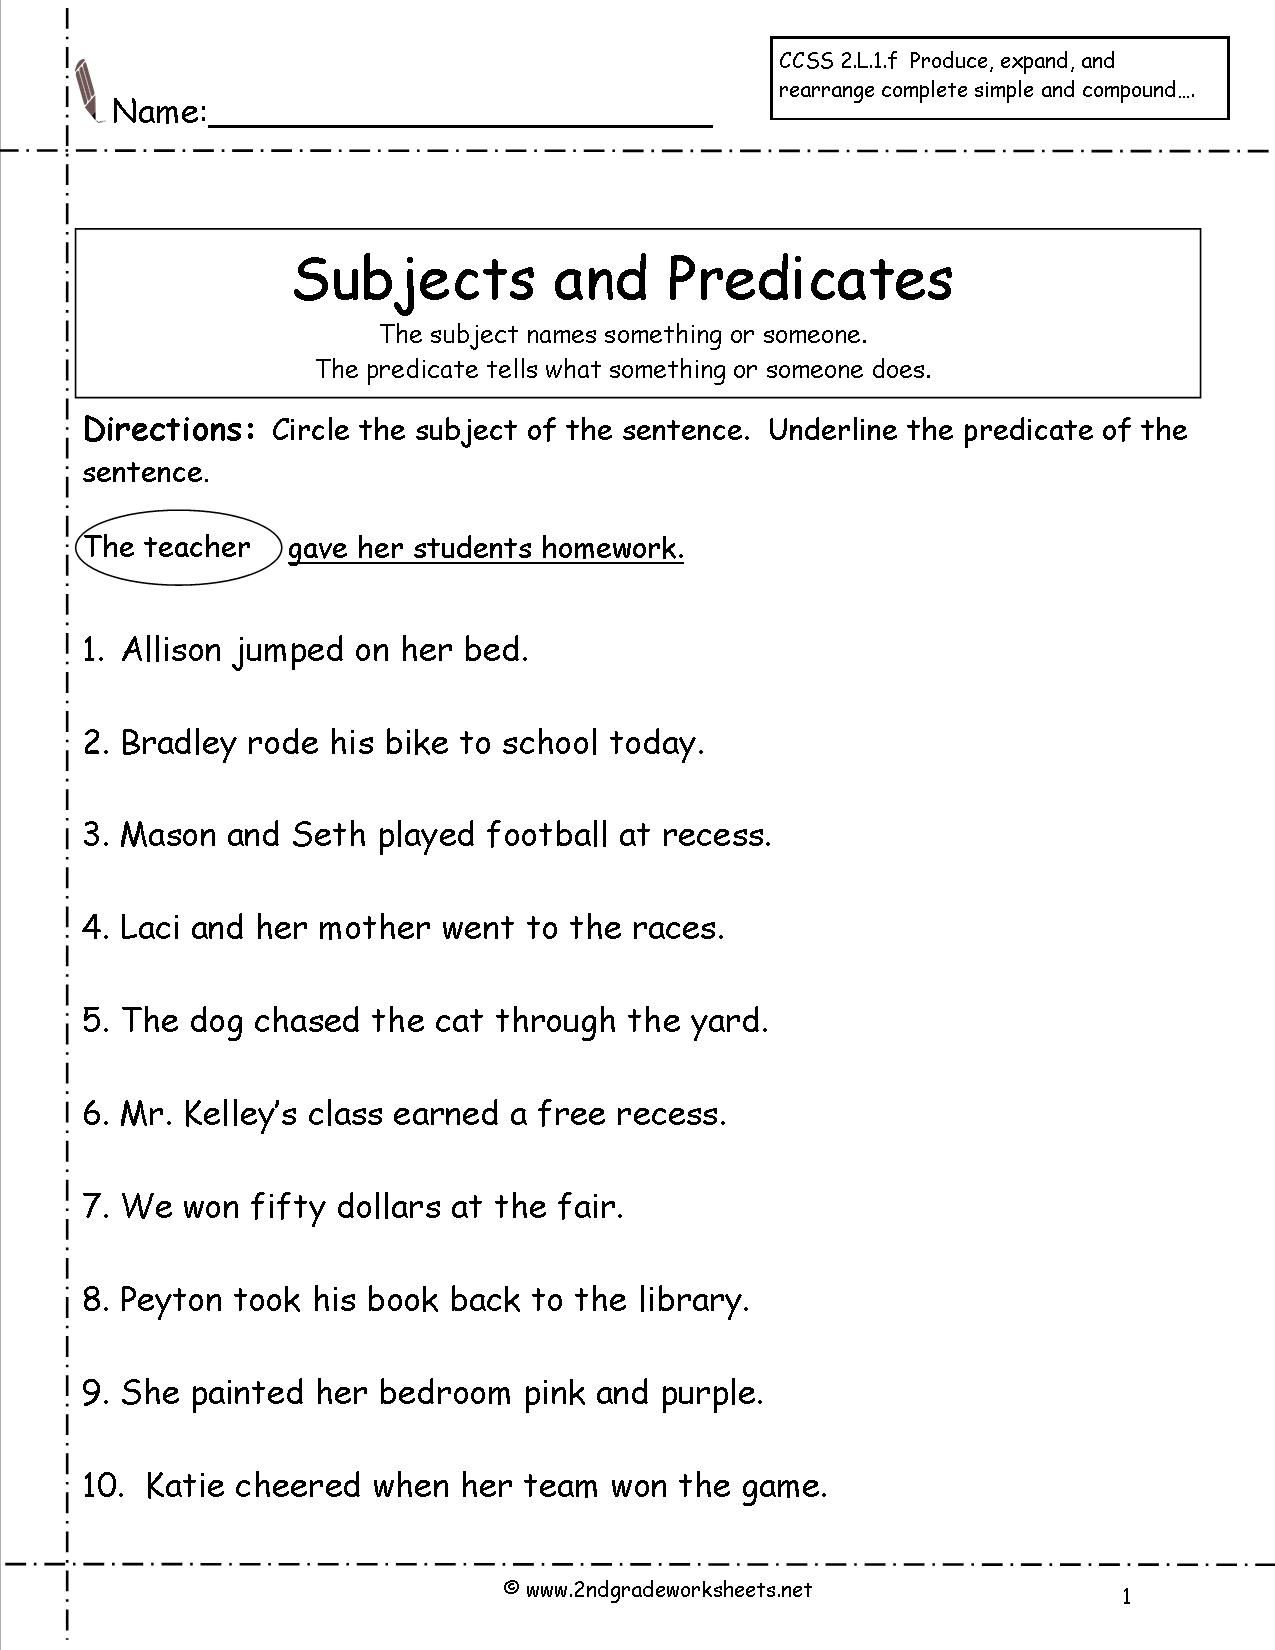 Subject Predicate Worksheets 2Nd Grade - Google Search | Kid Stuff | Free Printable Subject Predicate Worksheets 2Nd Grade